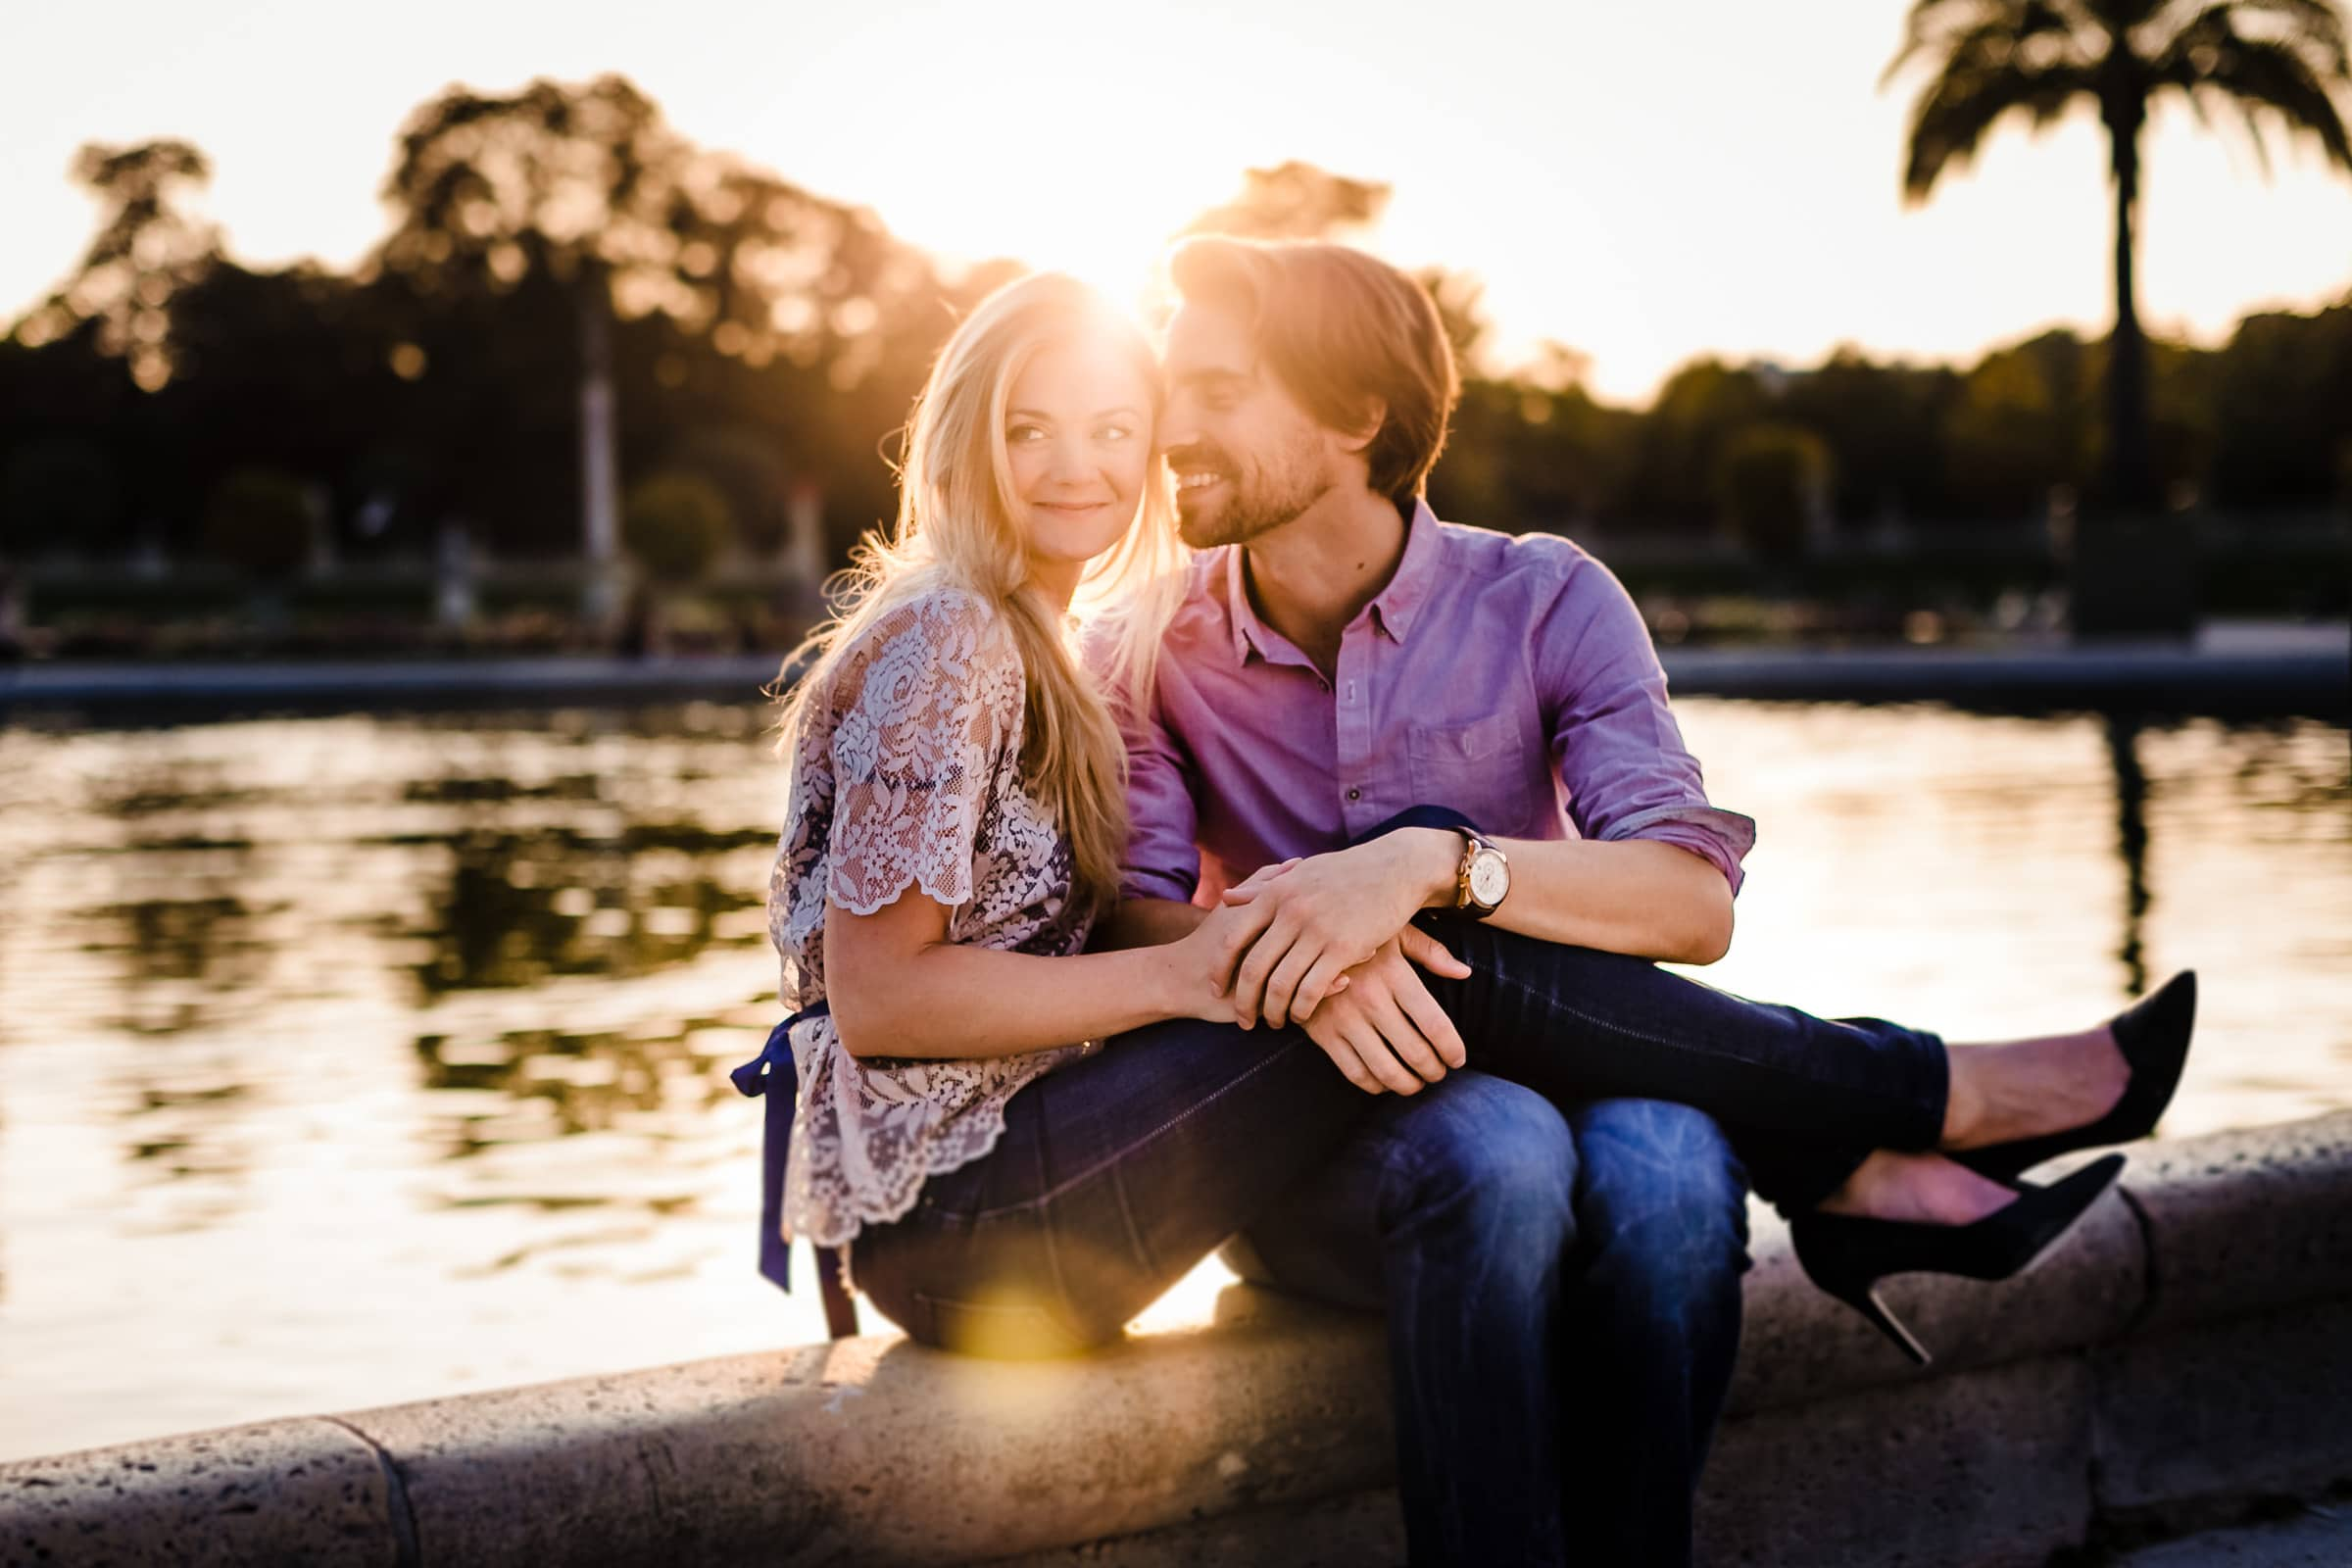 A peaceful moment of connection during Faye and David's Montmartre Paris Engagement date in the Luxembourg Gardens during warm sunset.